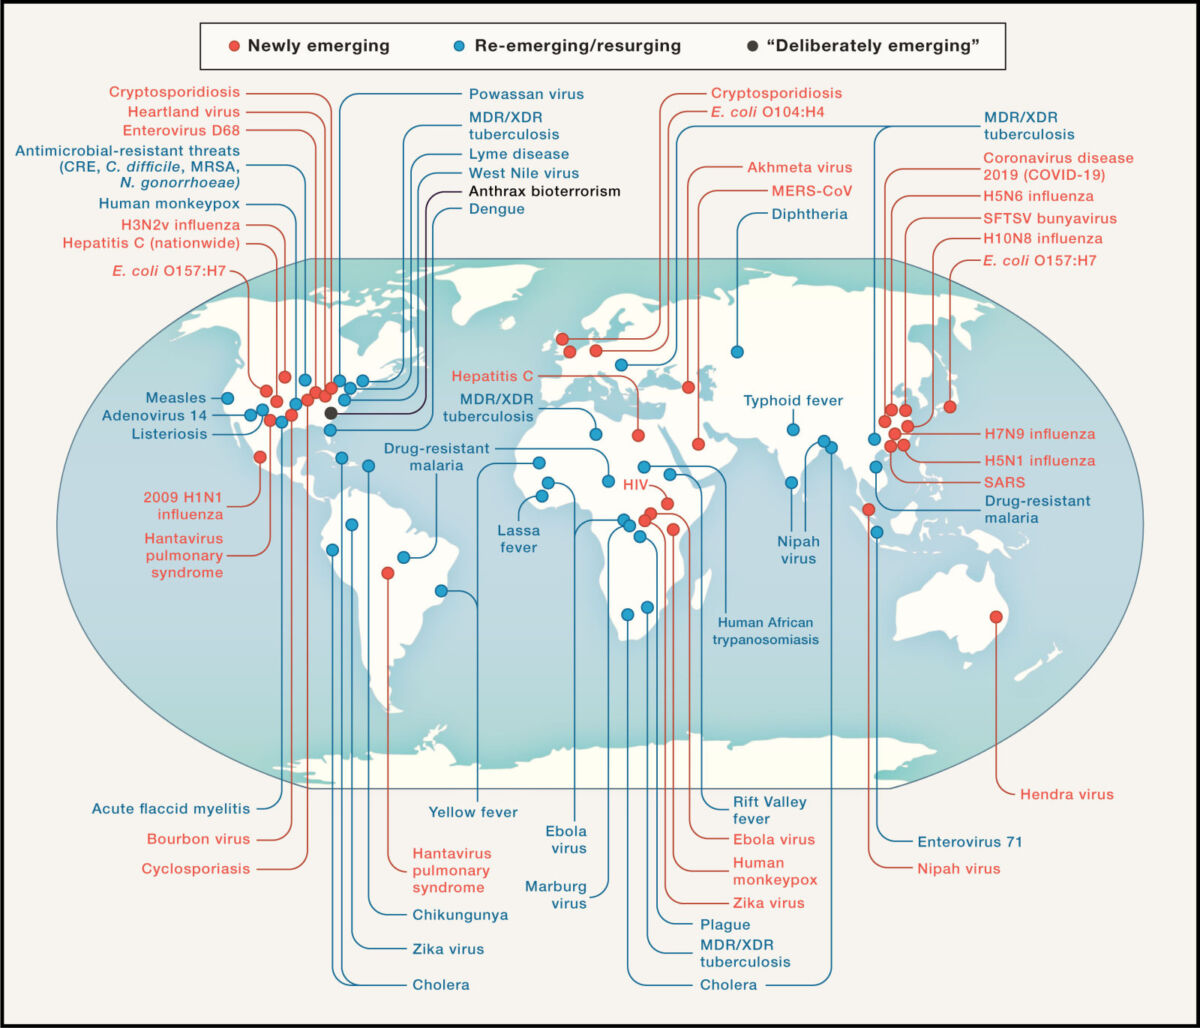 Dr. Fauci Just Released a World Map of Ongoing Disease Outbreaks 2